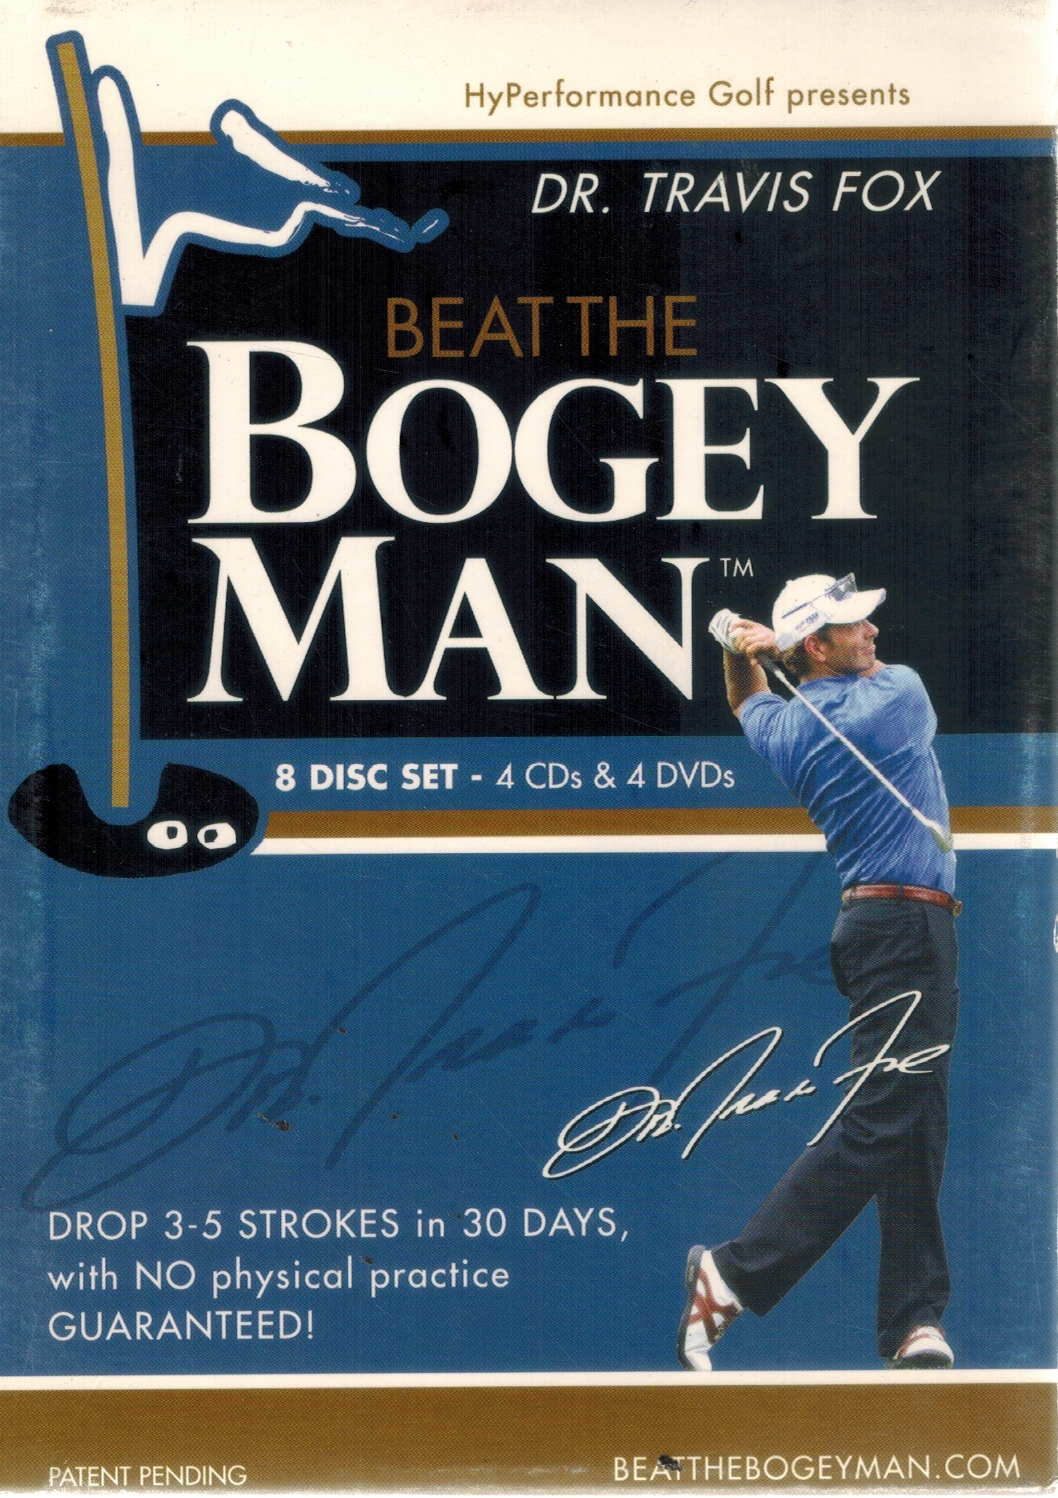 BEAT THE BOGEY MAN #1 - the Conscious Mind